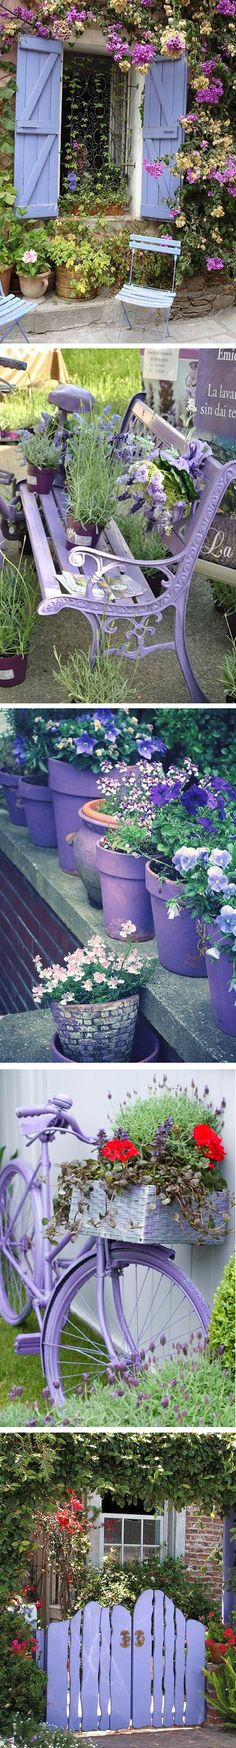 Love Lavender Accents in the Garden